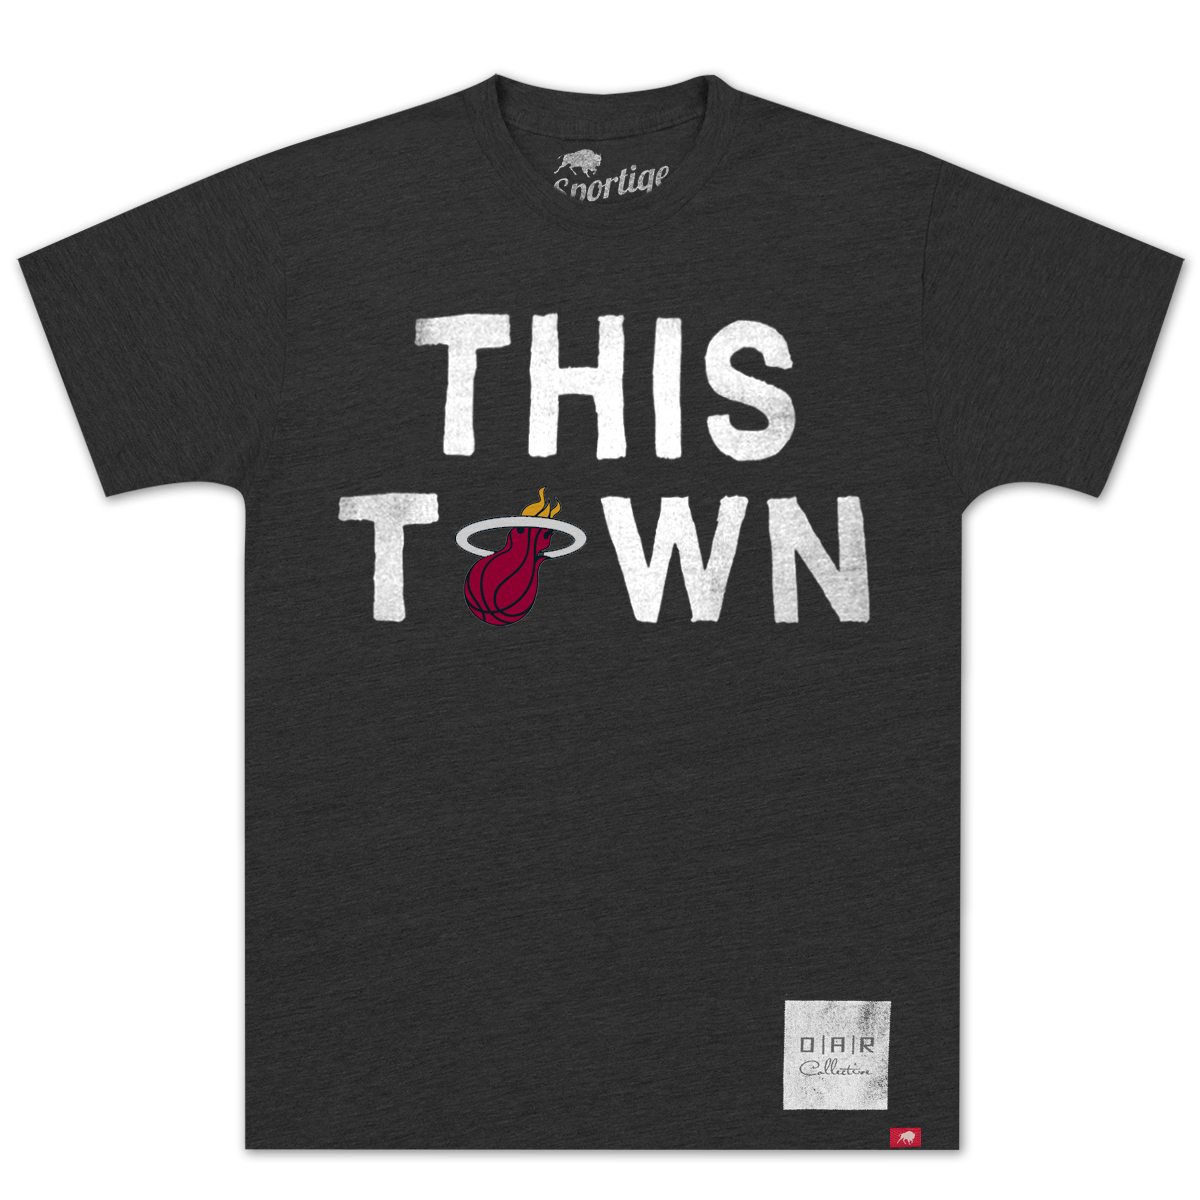 "O.A.R. Collective NBA ""This Town"" Miami Heat T-Shirt"